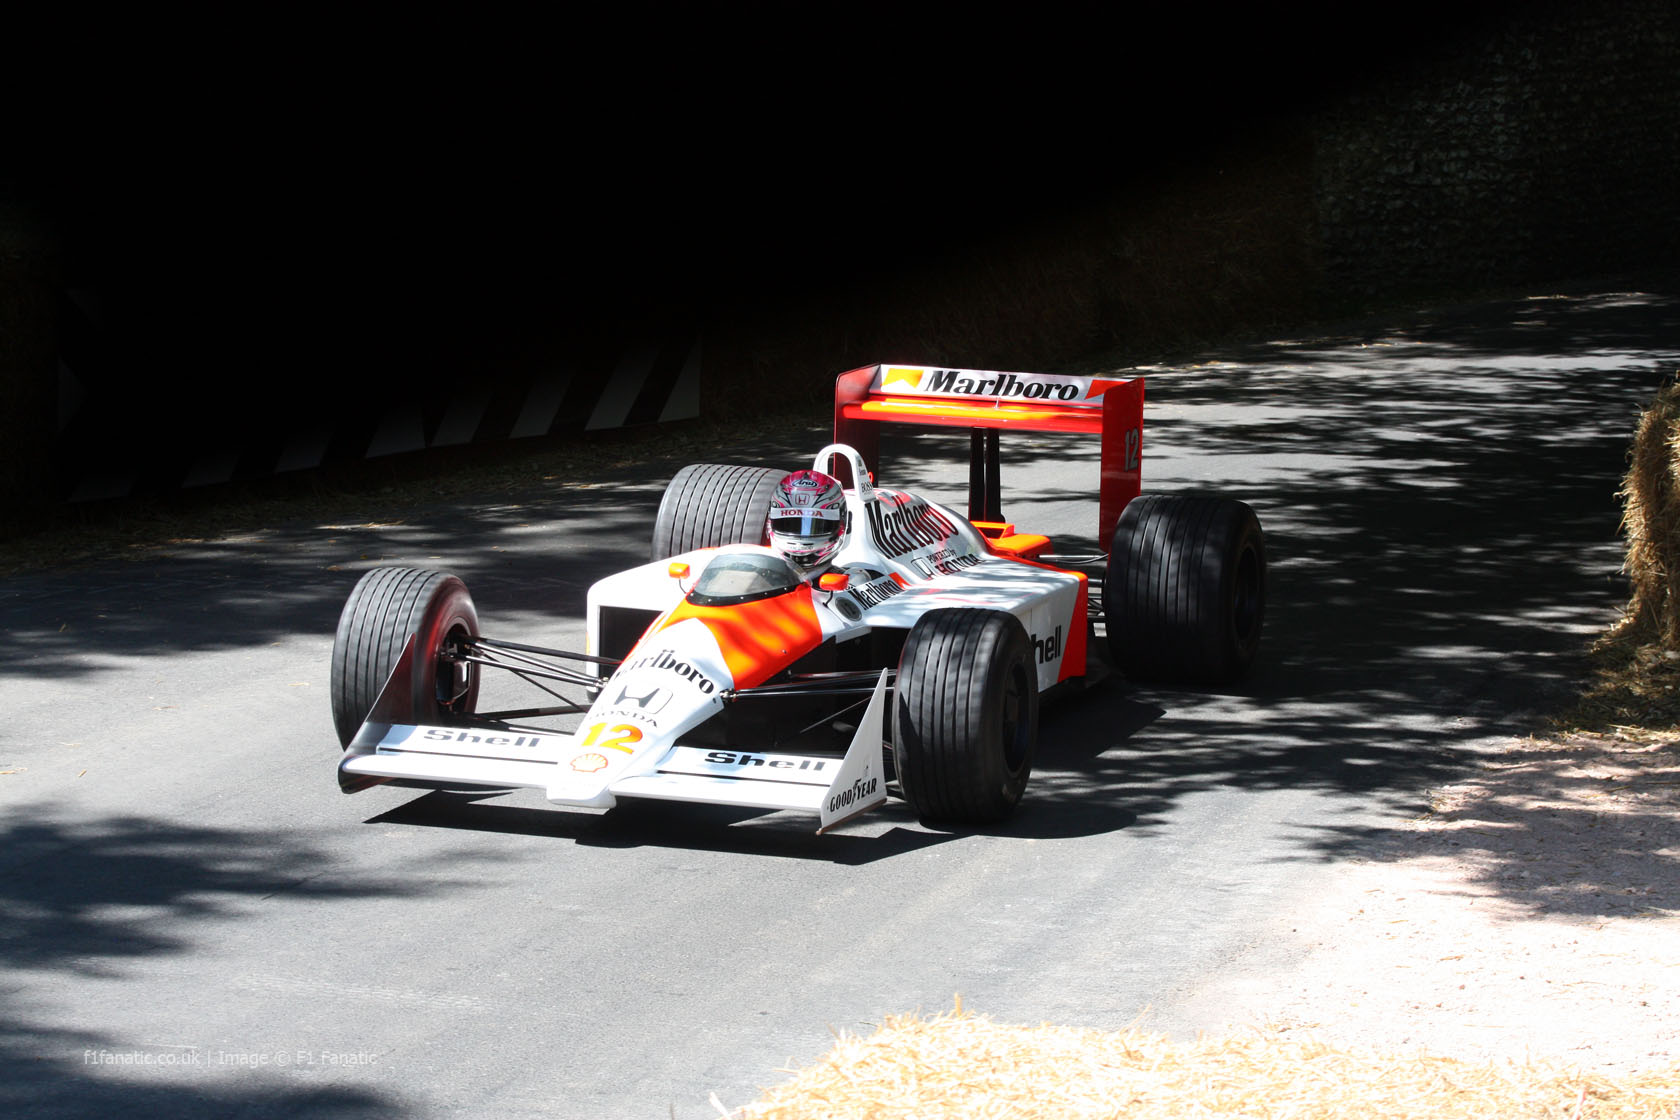 McLaren MP4-4 (1), Goodwood Festival of Speed, 2014